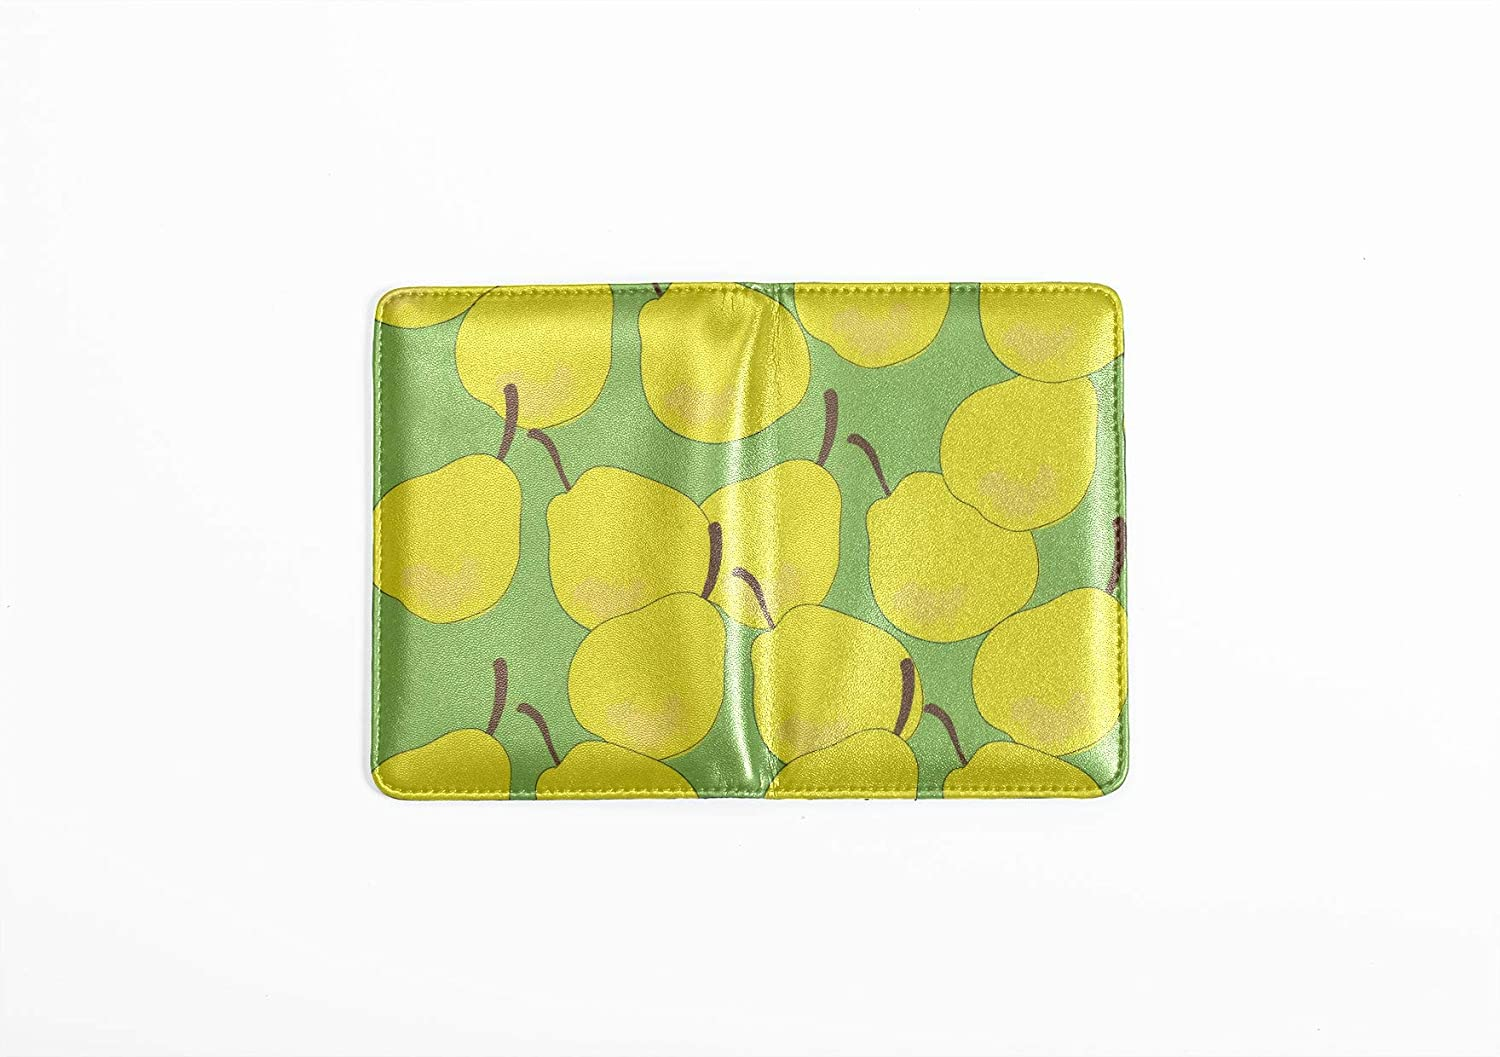 Personalized Passport Cover Cute Fashion Style Fruit Pear Us Passport Holder Cover Multi Purpose Print Canvas Passport Cover Travel Wallets For Unisex 5.51x4.37 Inch